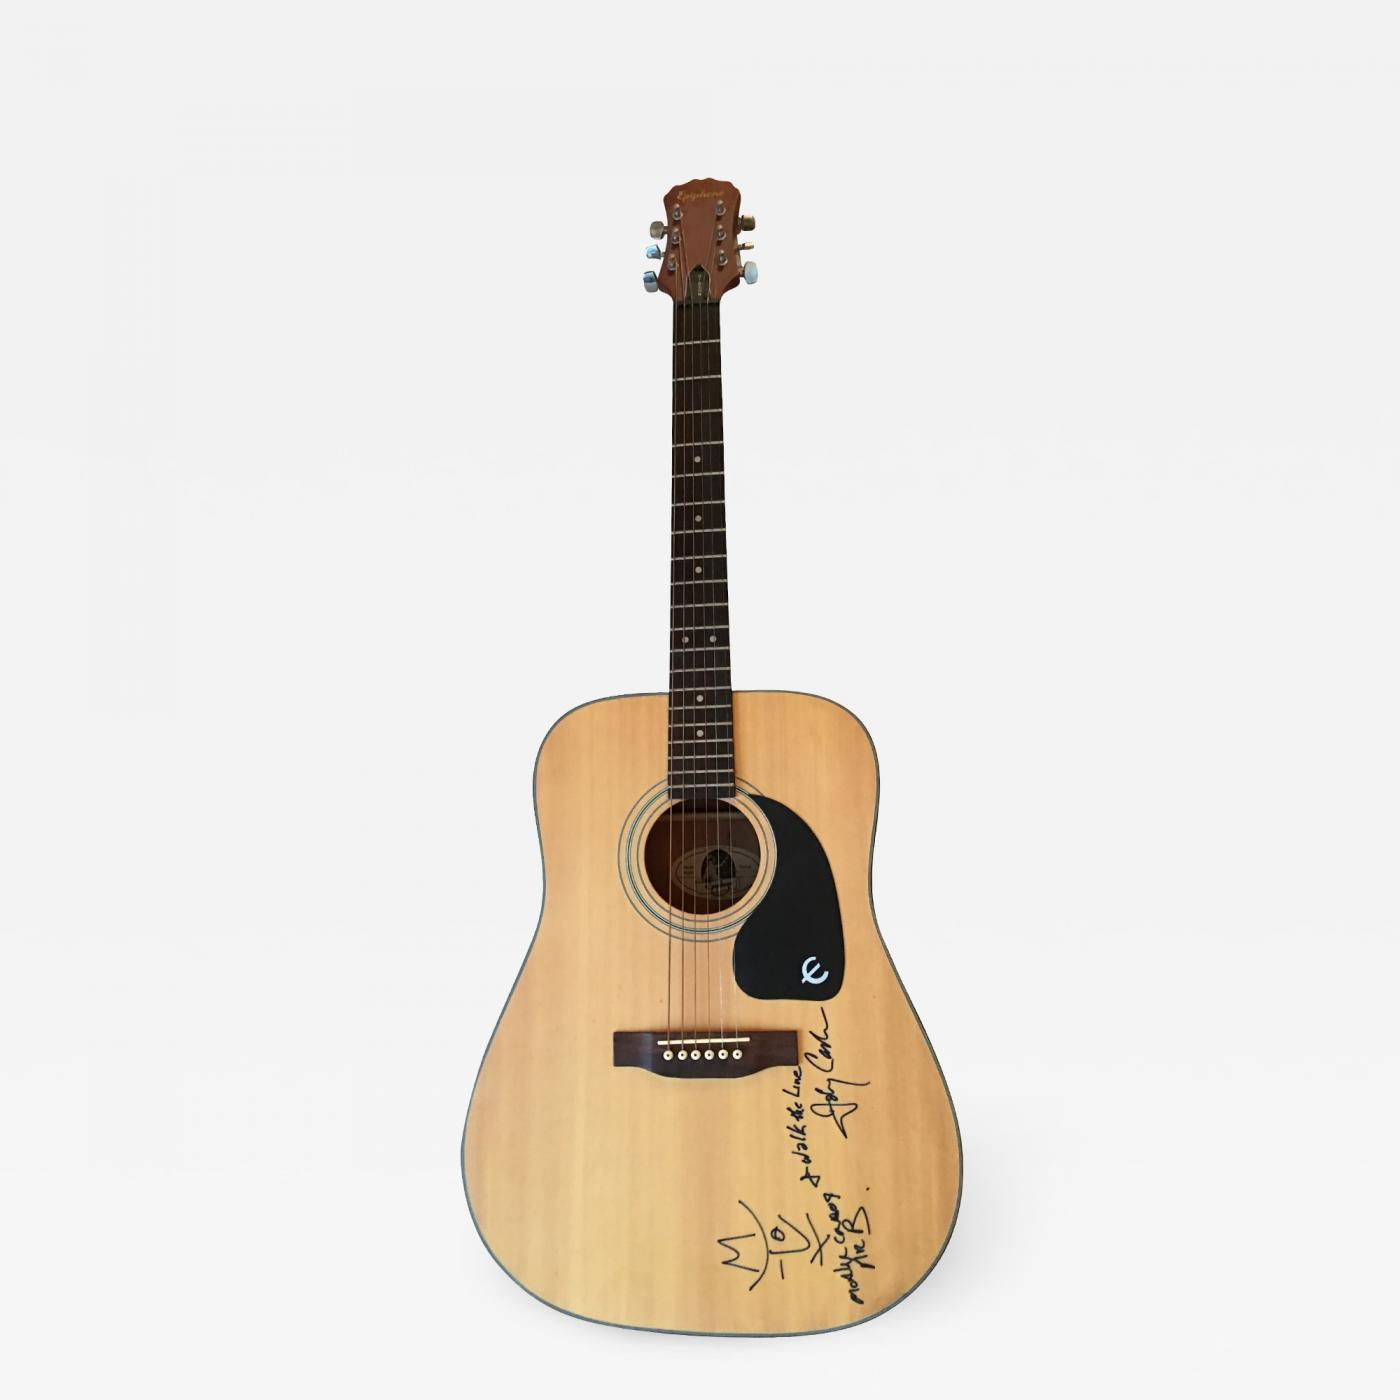 gibson johnny cash and bono autographed acoustic gibson guitar. Black Bedroom Furniture Sets. Home Design Ideas